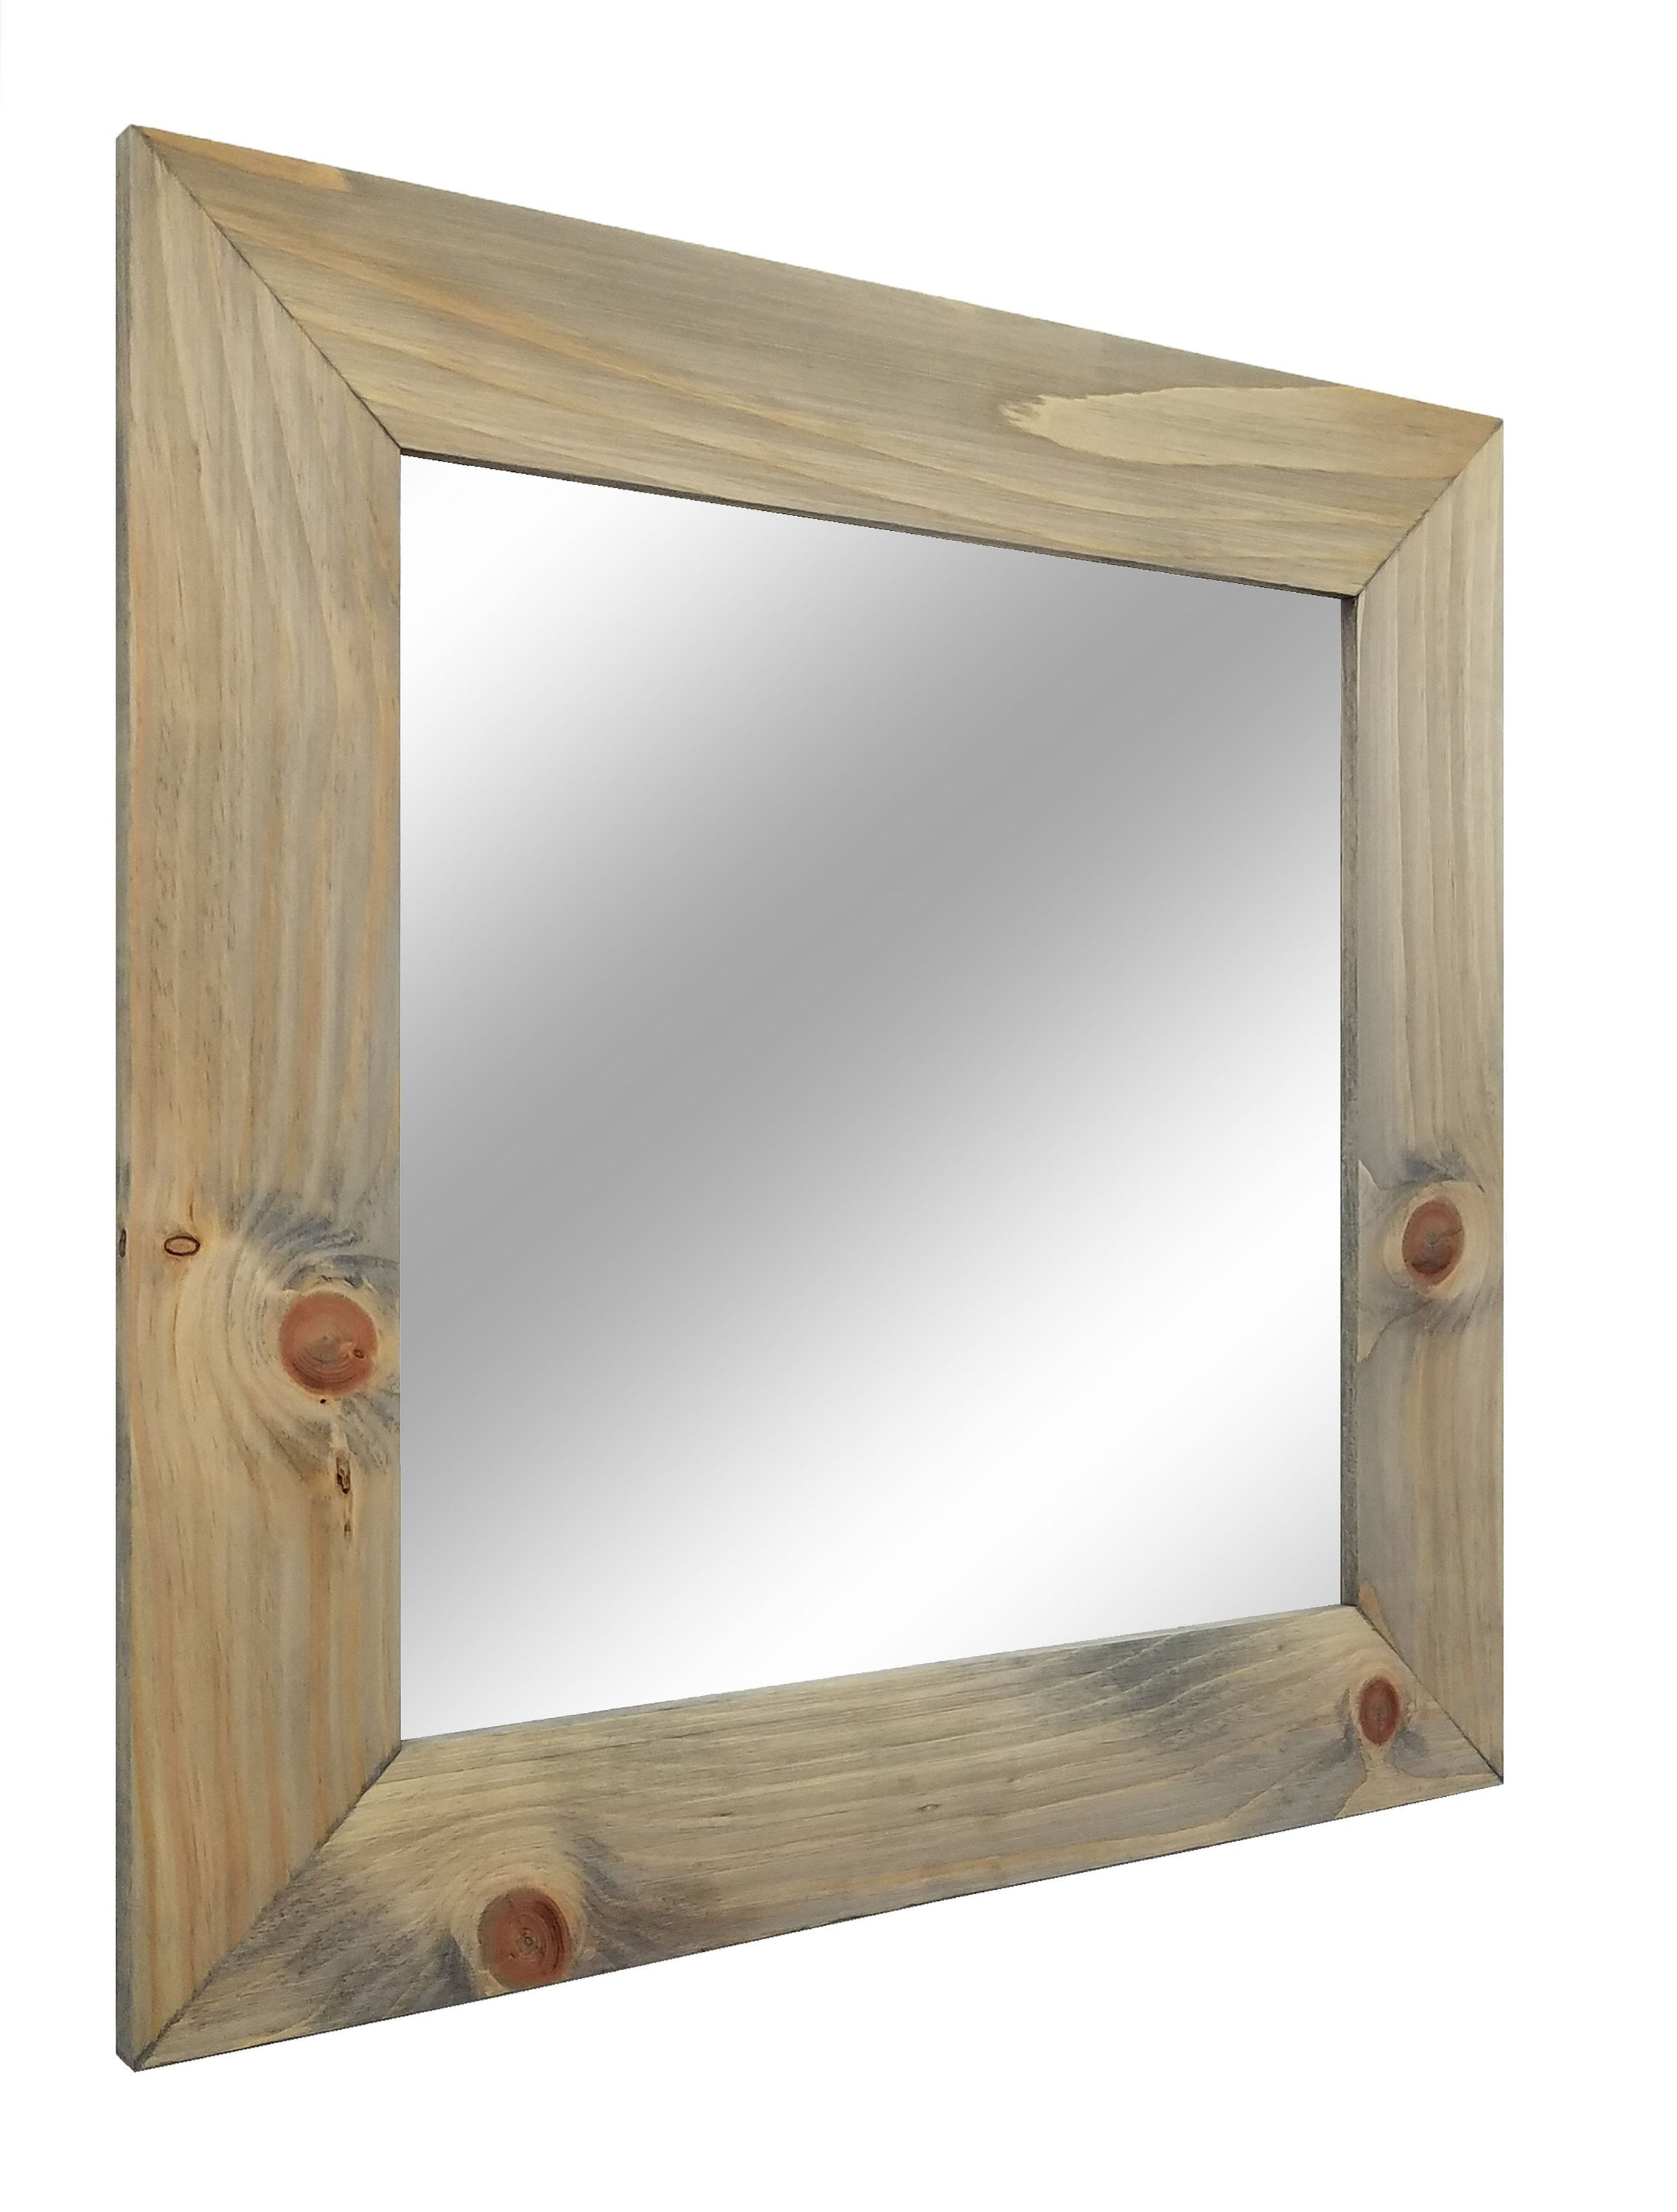 Square Shiplap Wood Framed Mirror - Renewed Decor & Storage